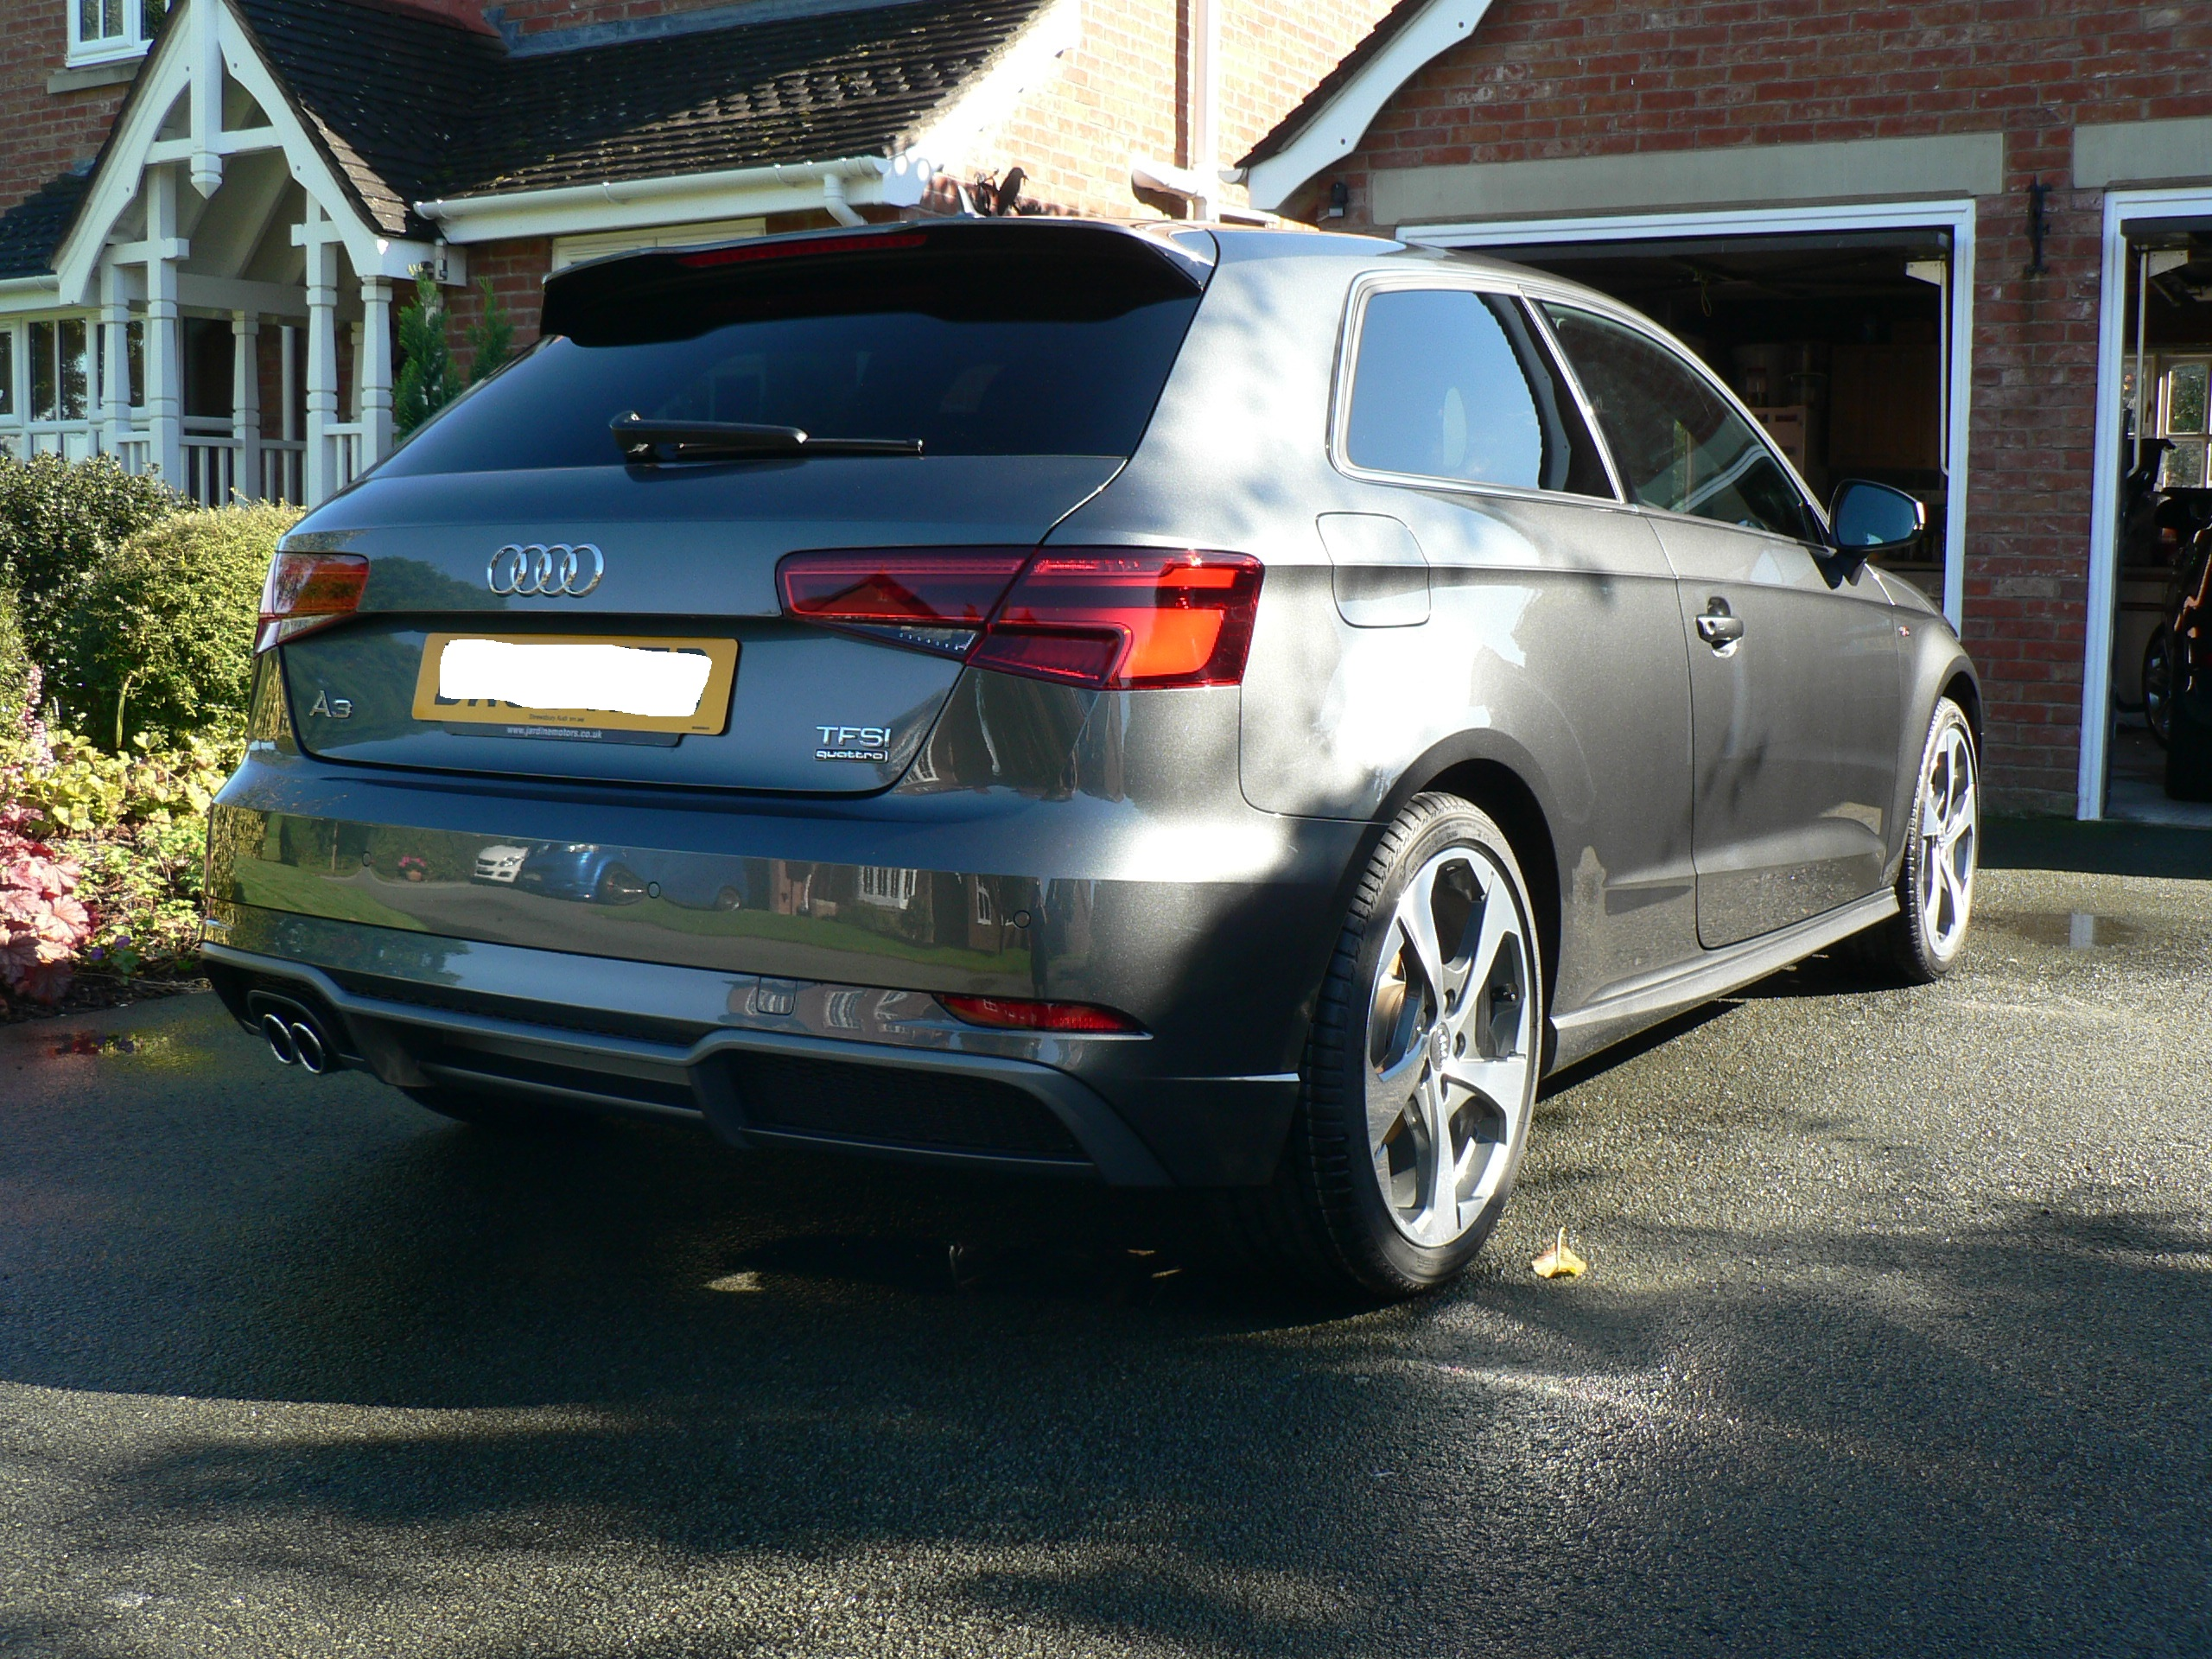 facelift audi a3 hb s line 2 0 tfsi quattro s tronic 190ps in daytona grey audi. Black Bedroom Furniture Sets. Home Design Ideas